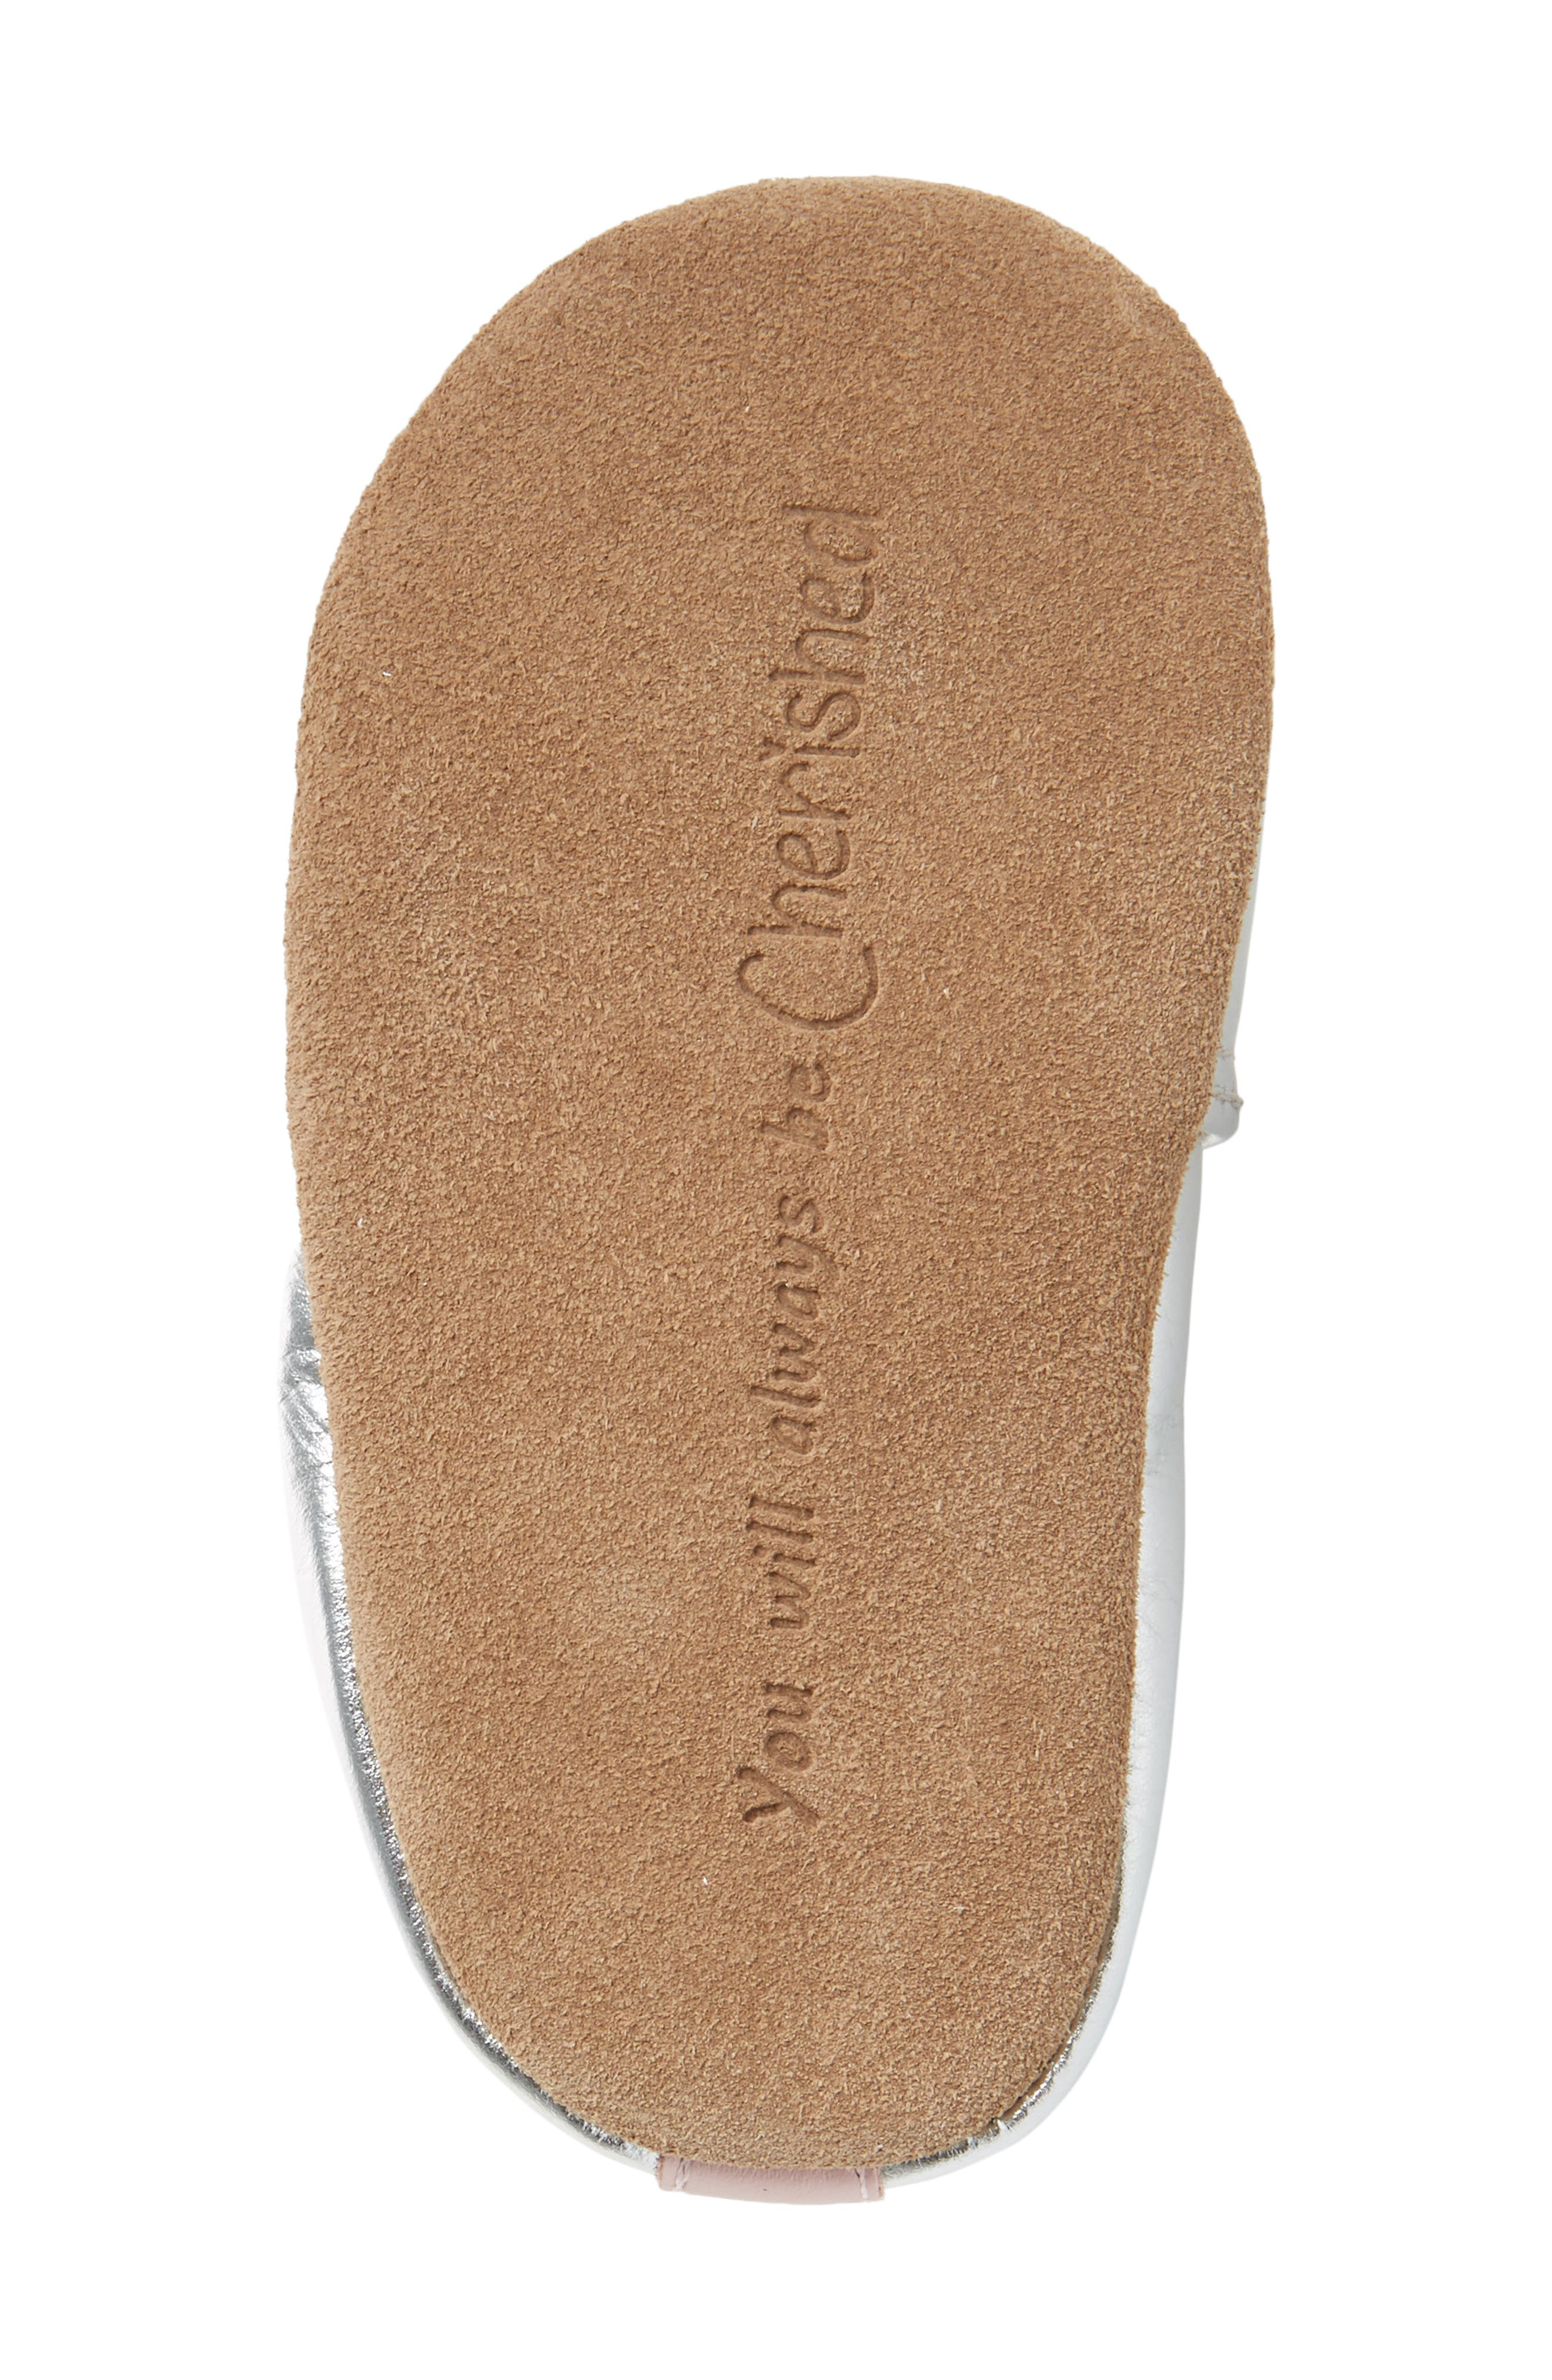 Loved & Cherished Moccasin Crib Shoe,                             Alternate thumbnail 6, color,                             Silver